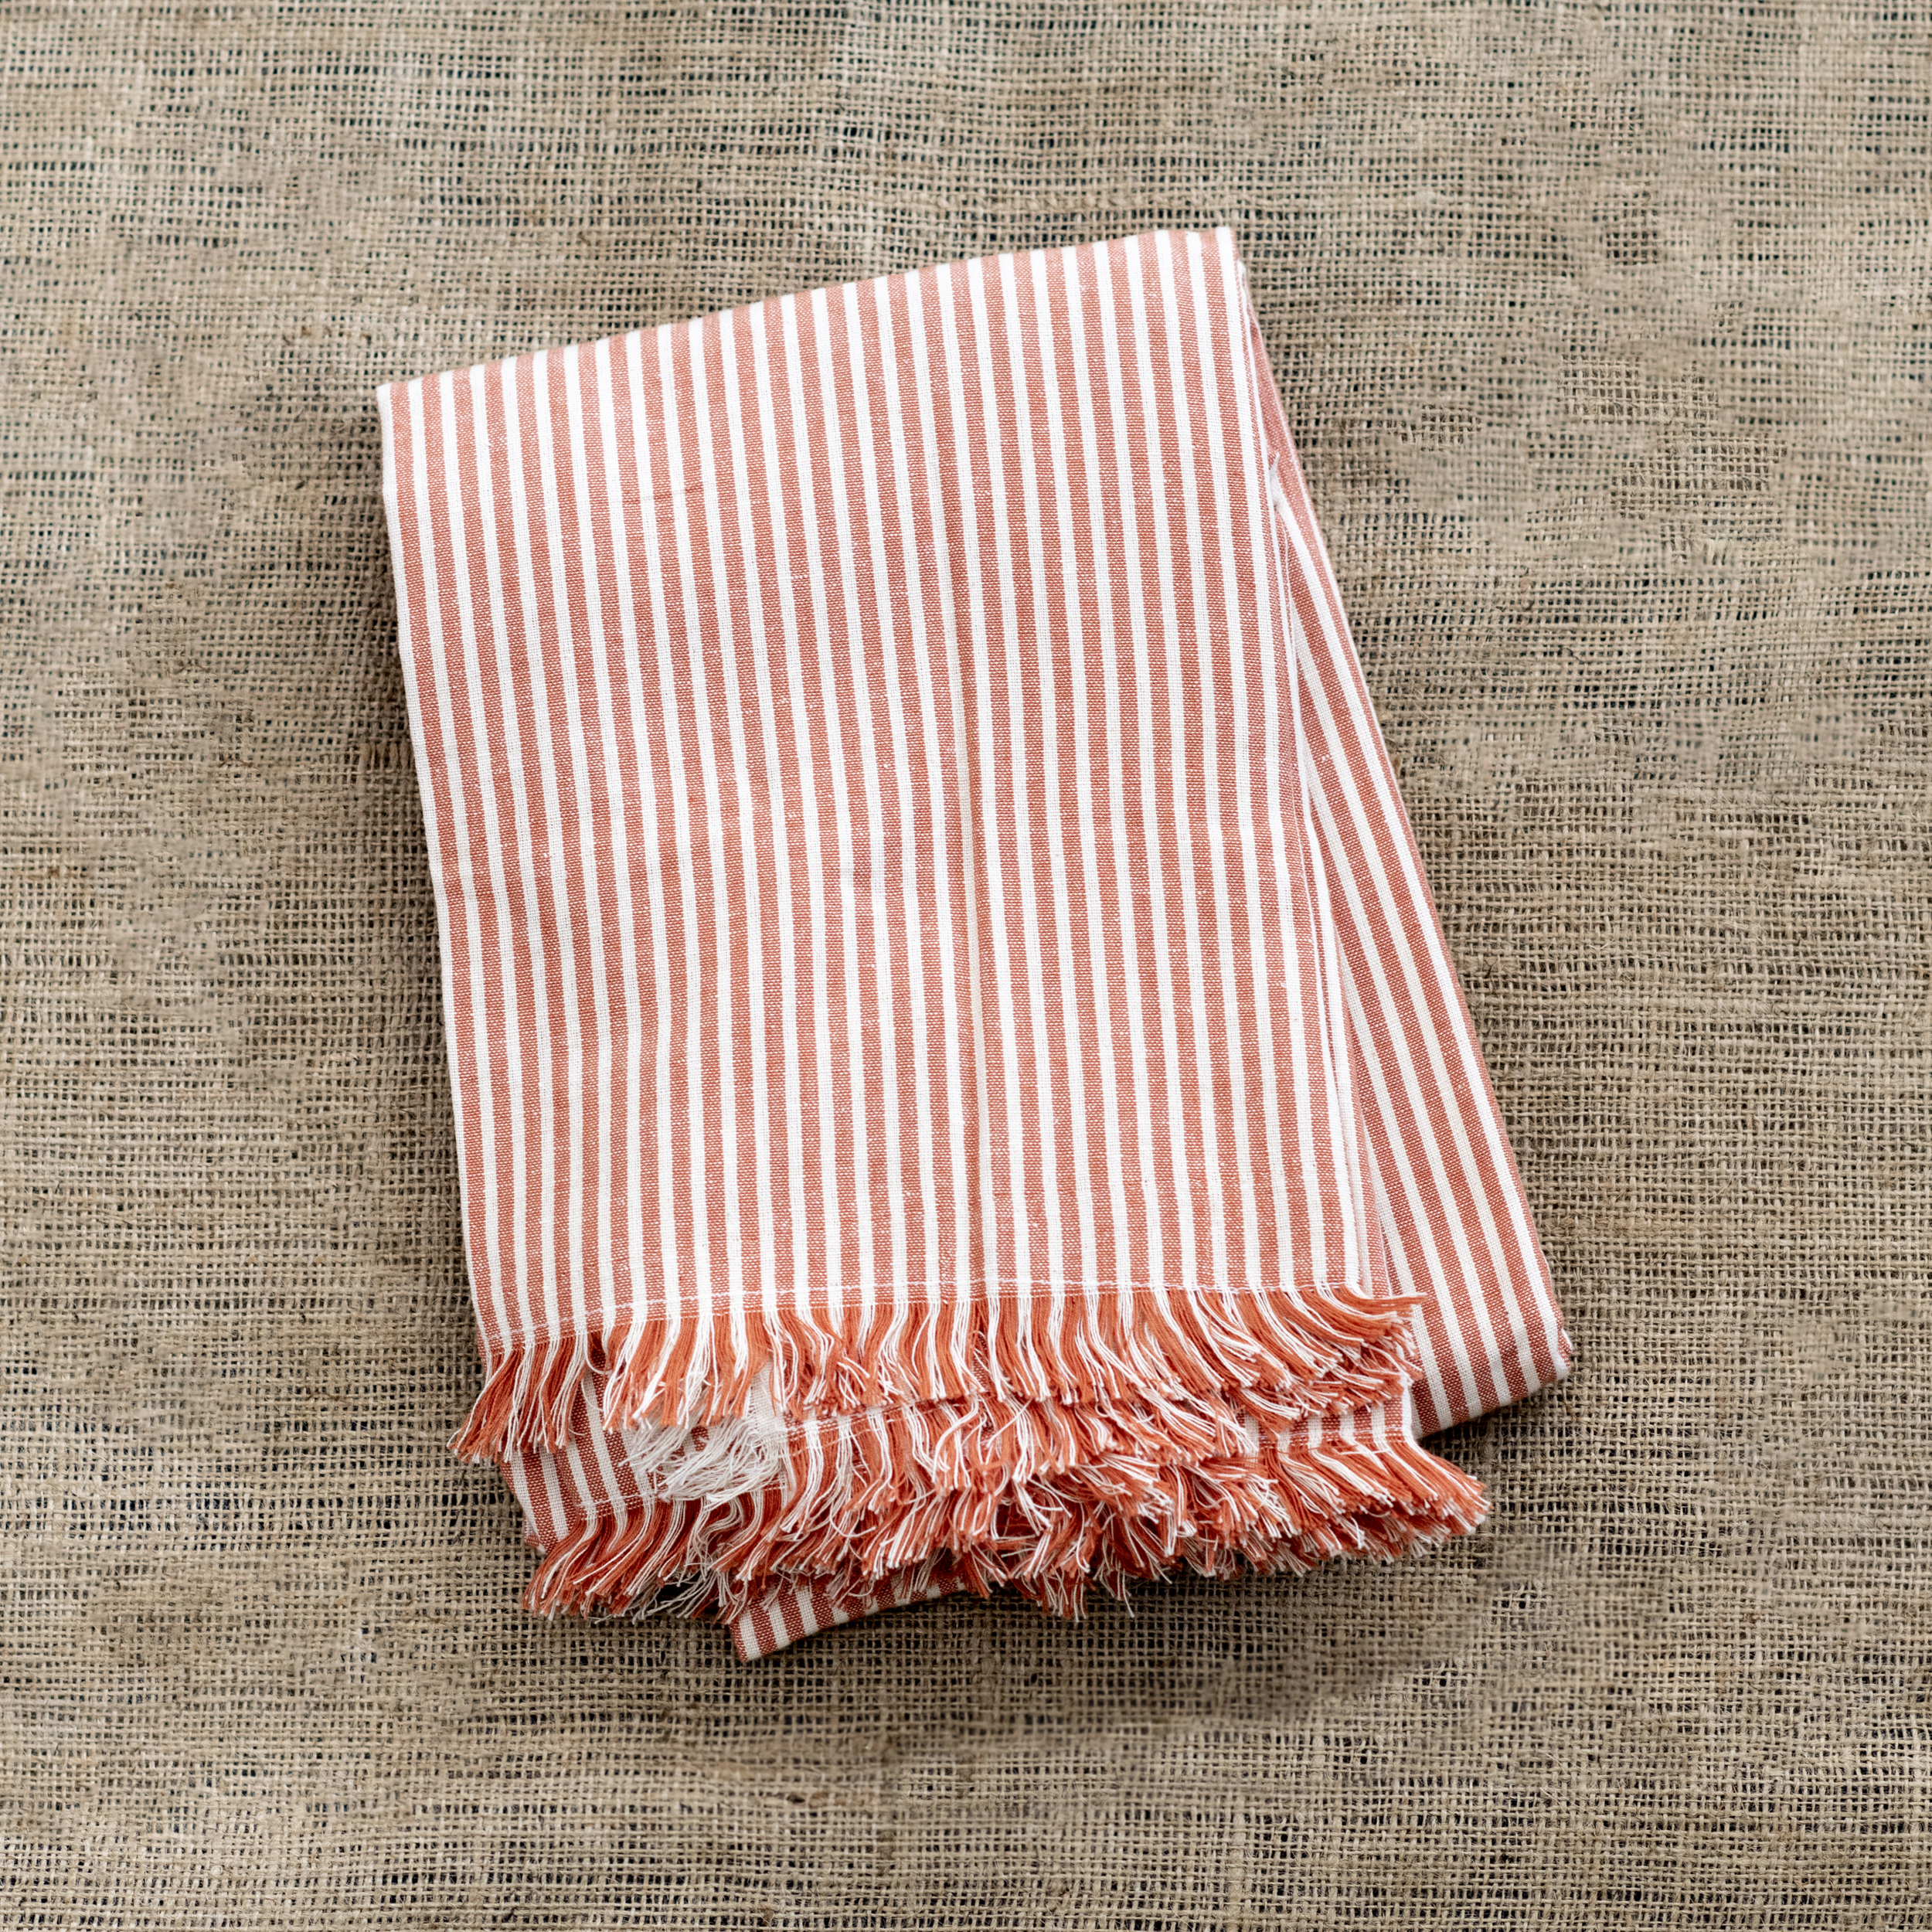 Terracotta Striped Tablecloth